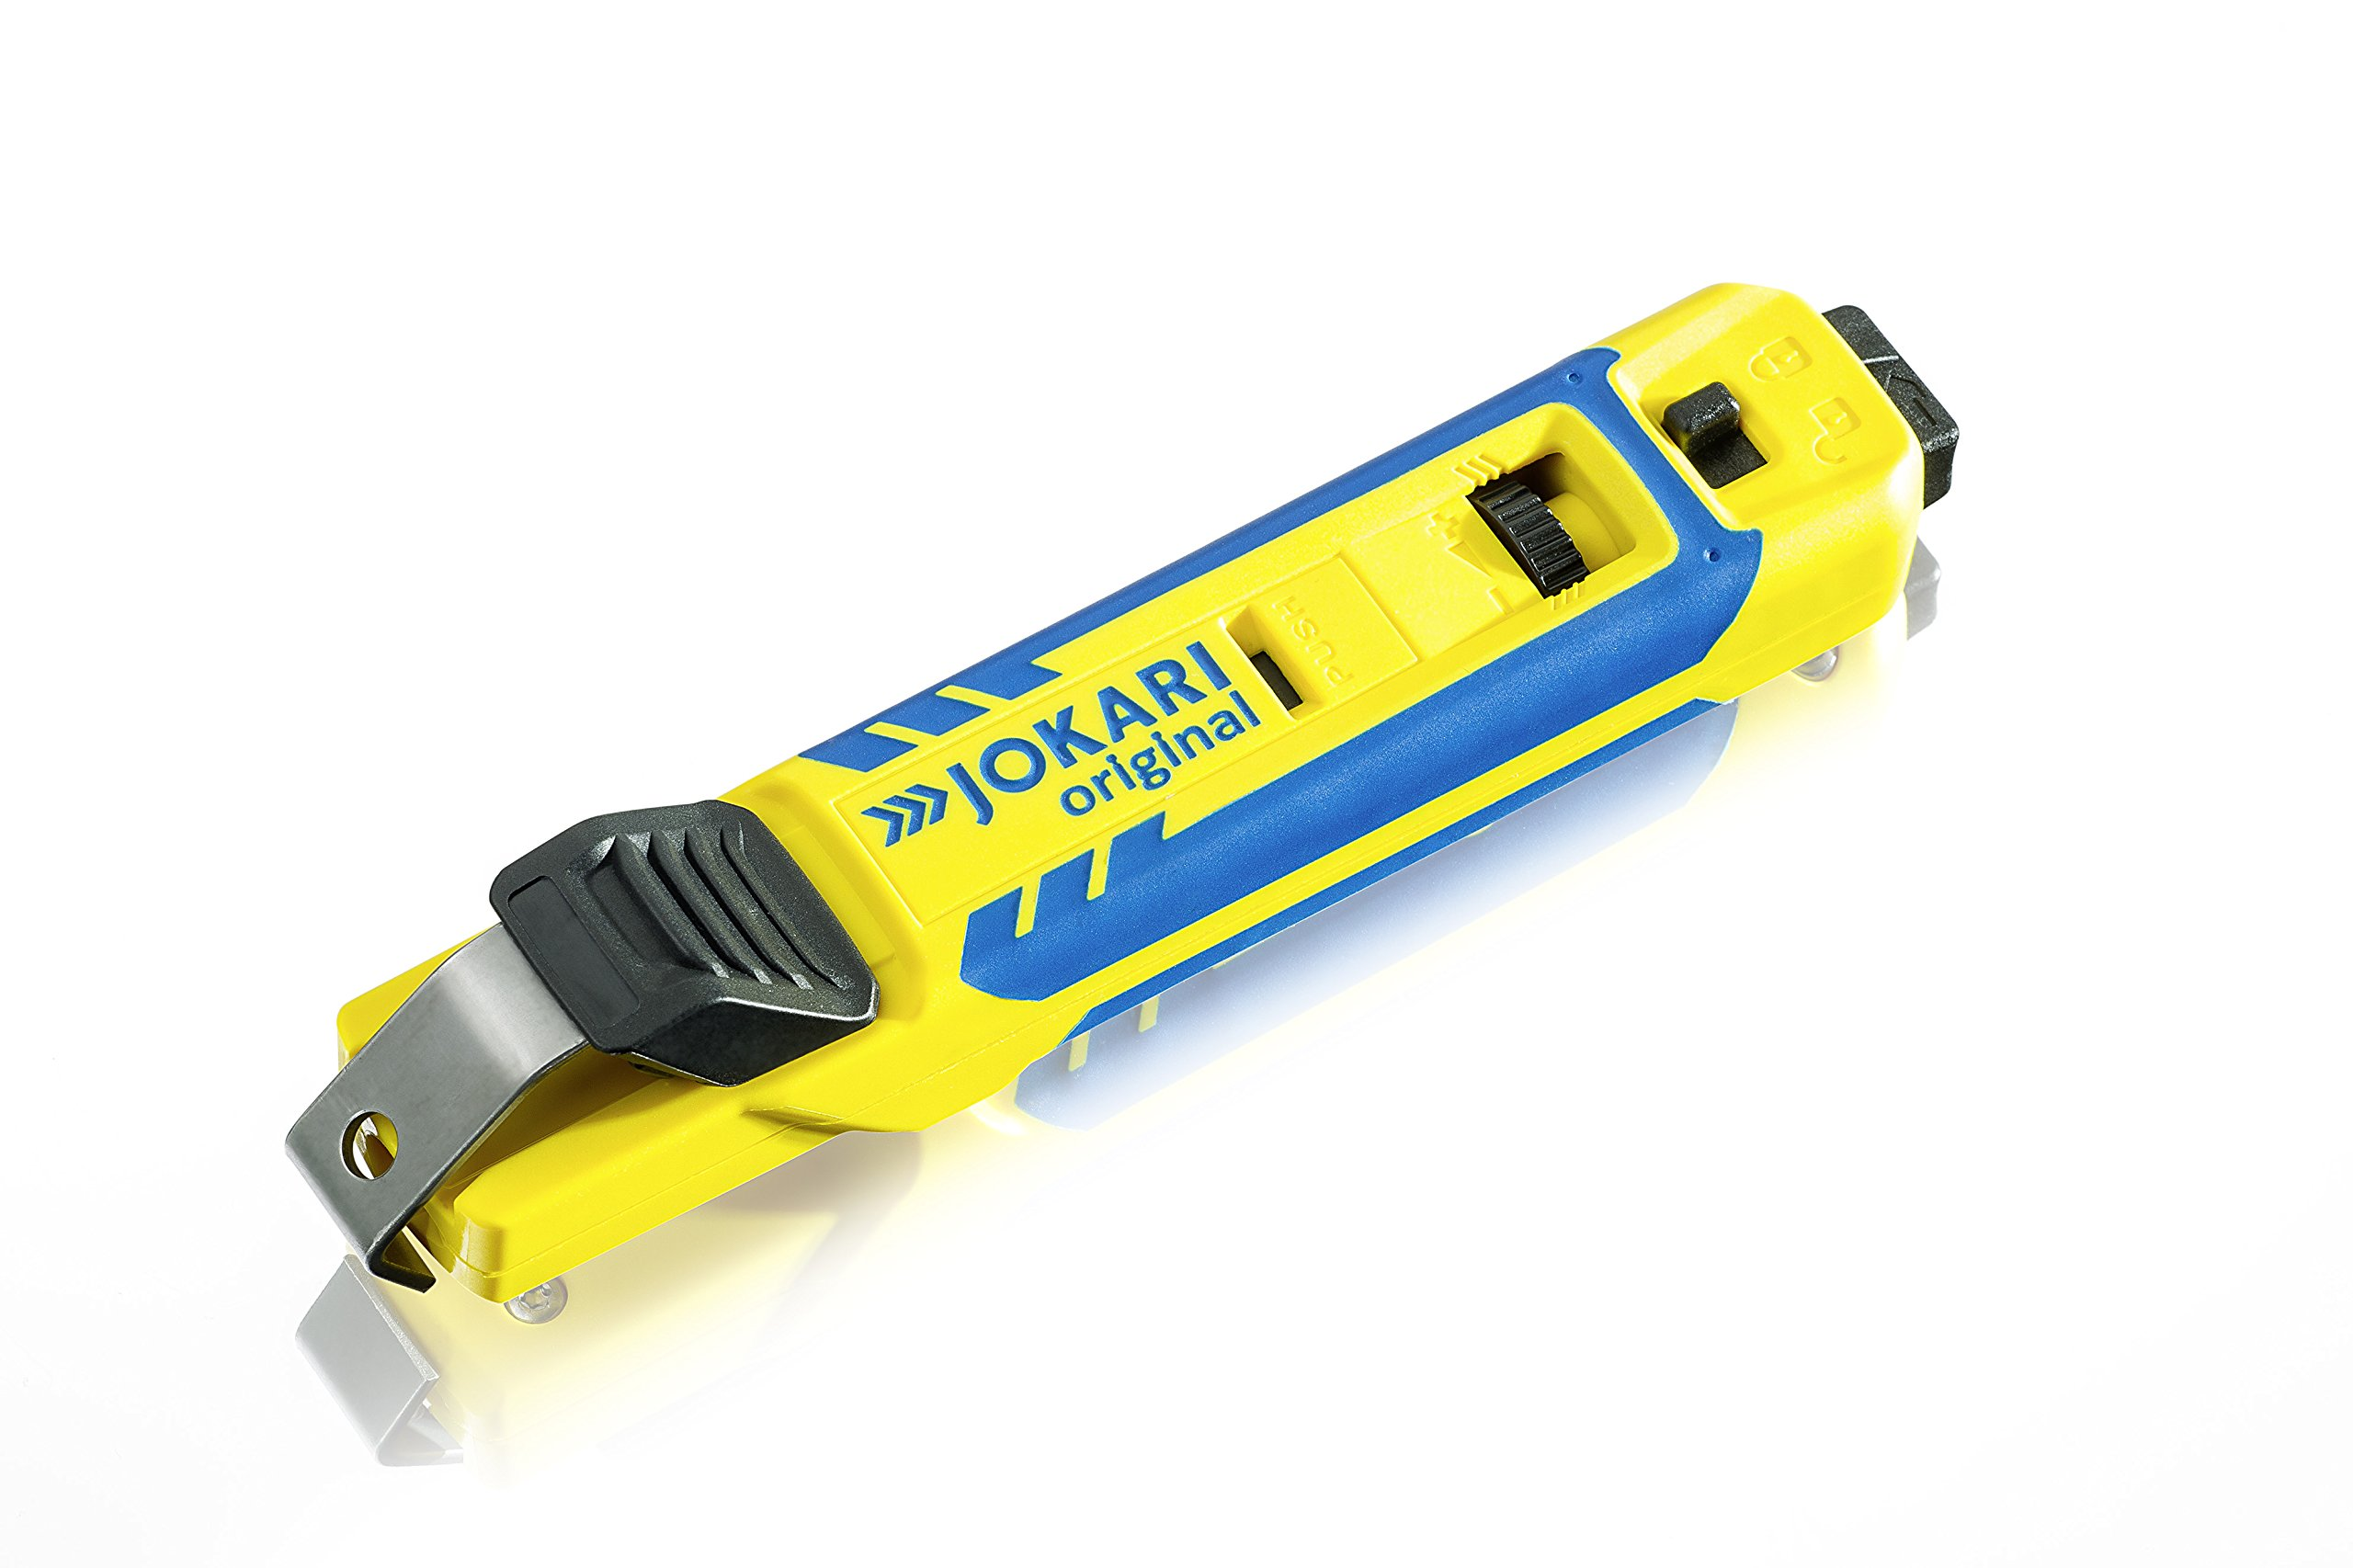 JOKARI 70000 4-70 Cable Knife System for Round Cable Stripping, Yellow